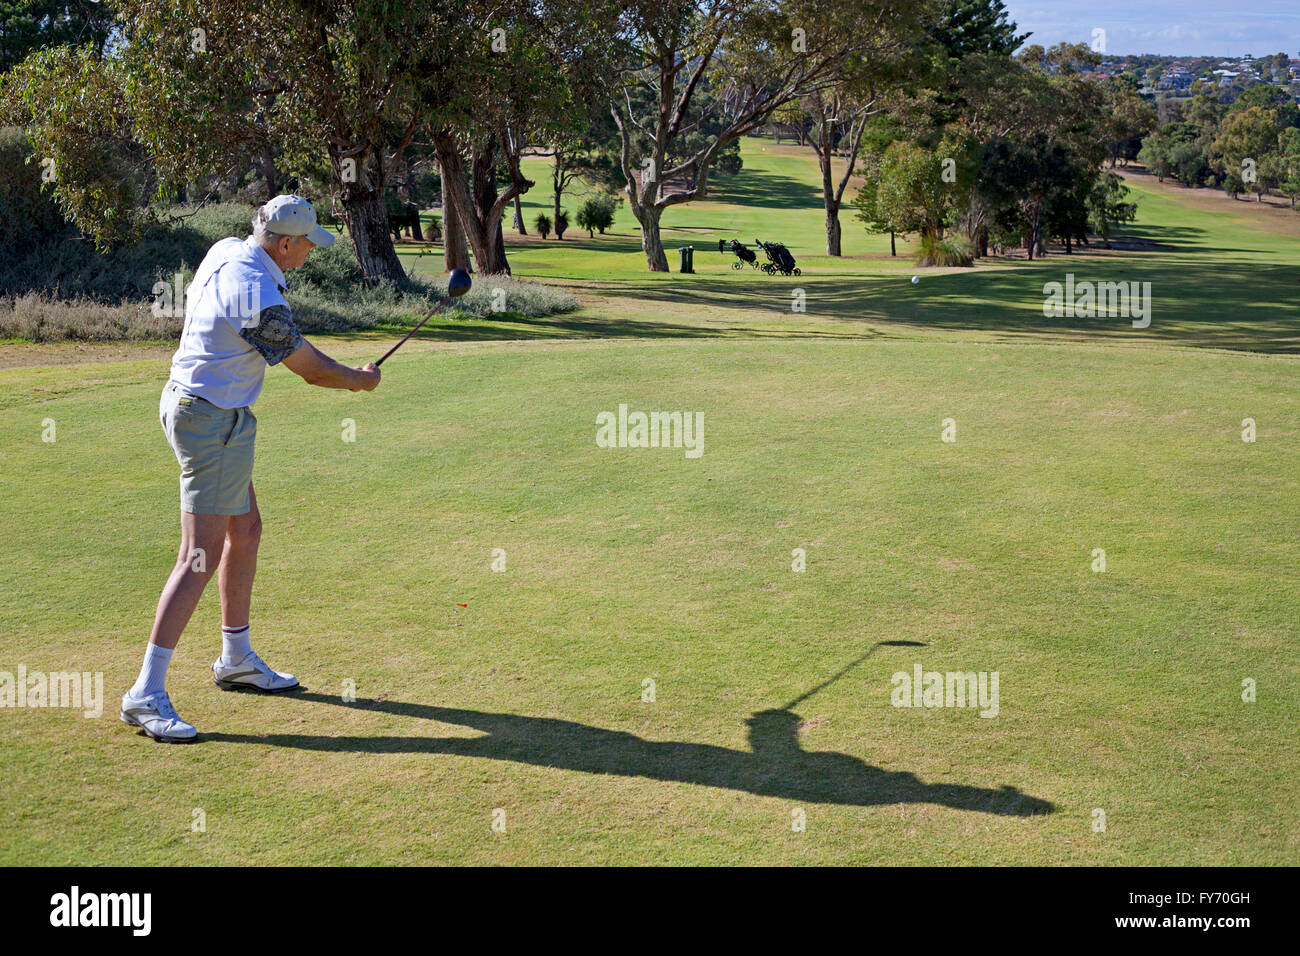 A golfer after hitting a tee shot - Stock Image